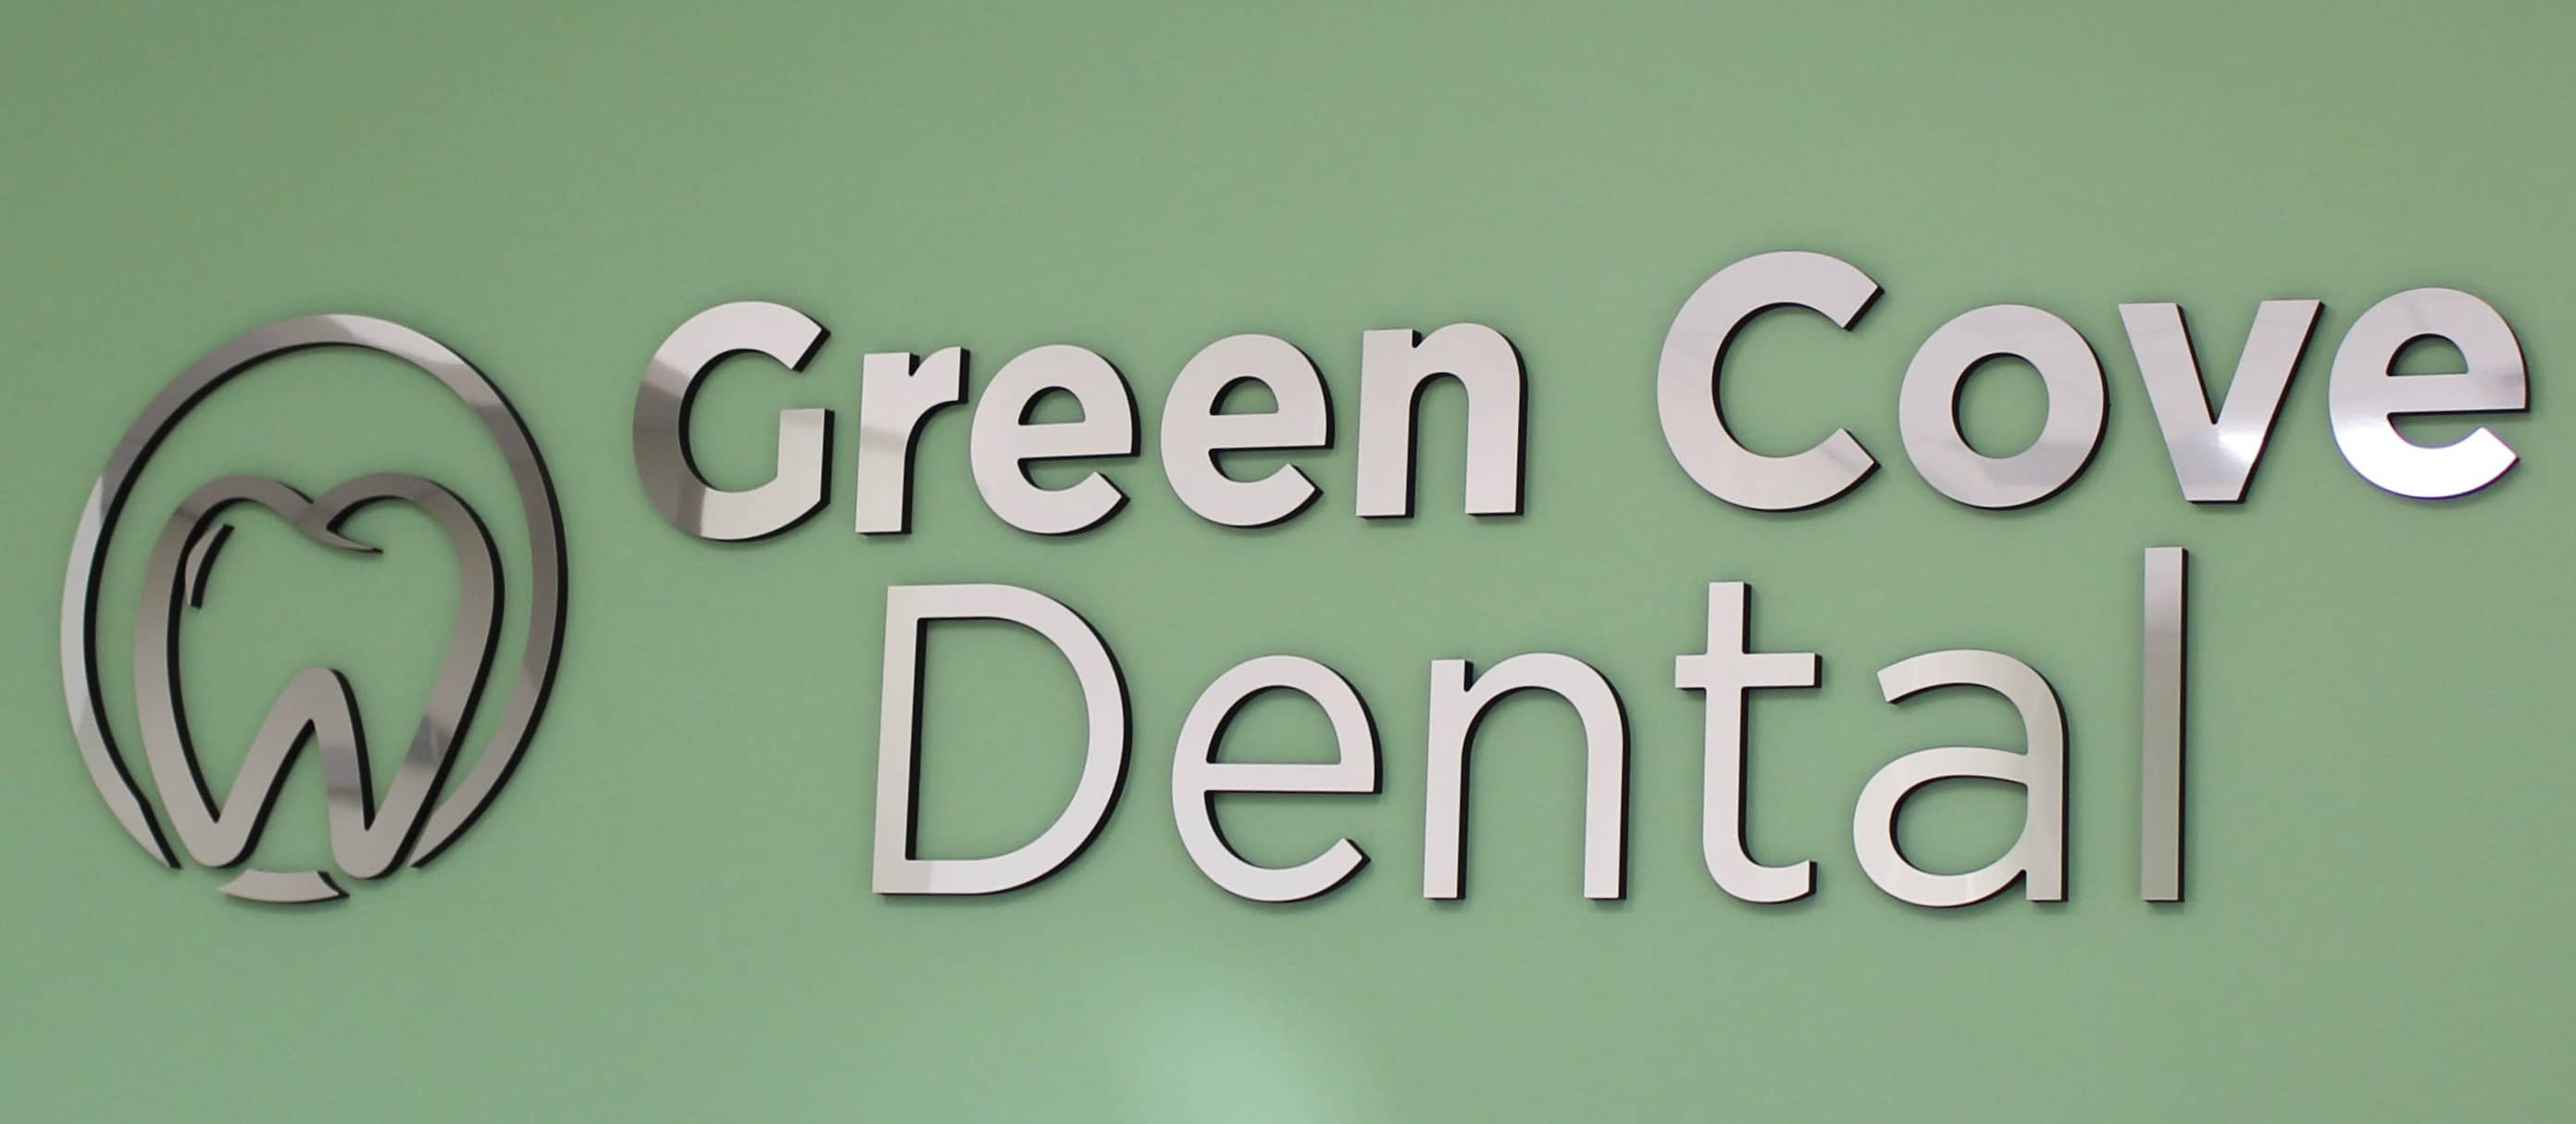 Green Cove Dental